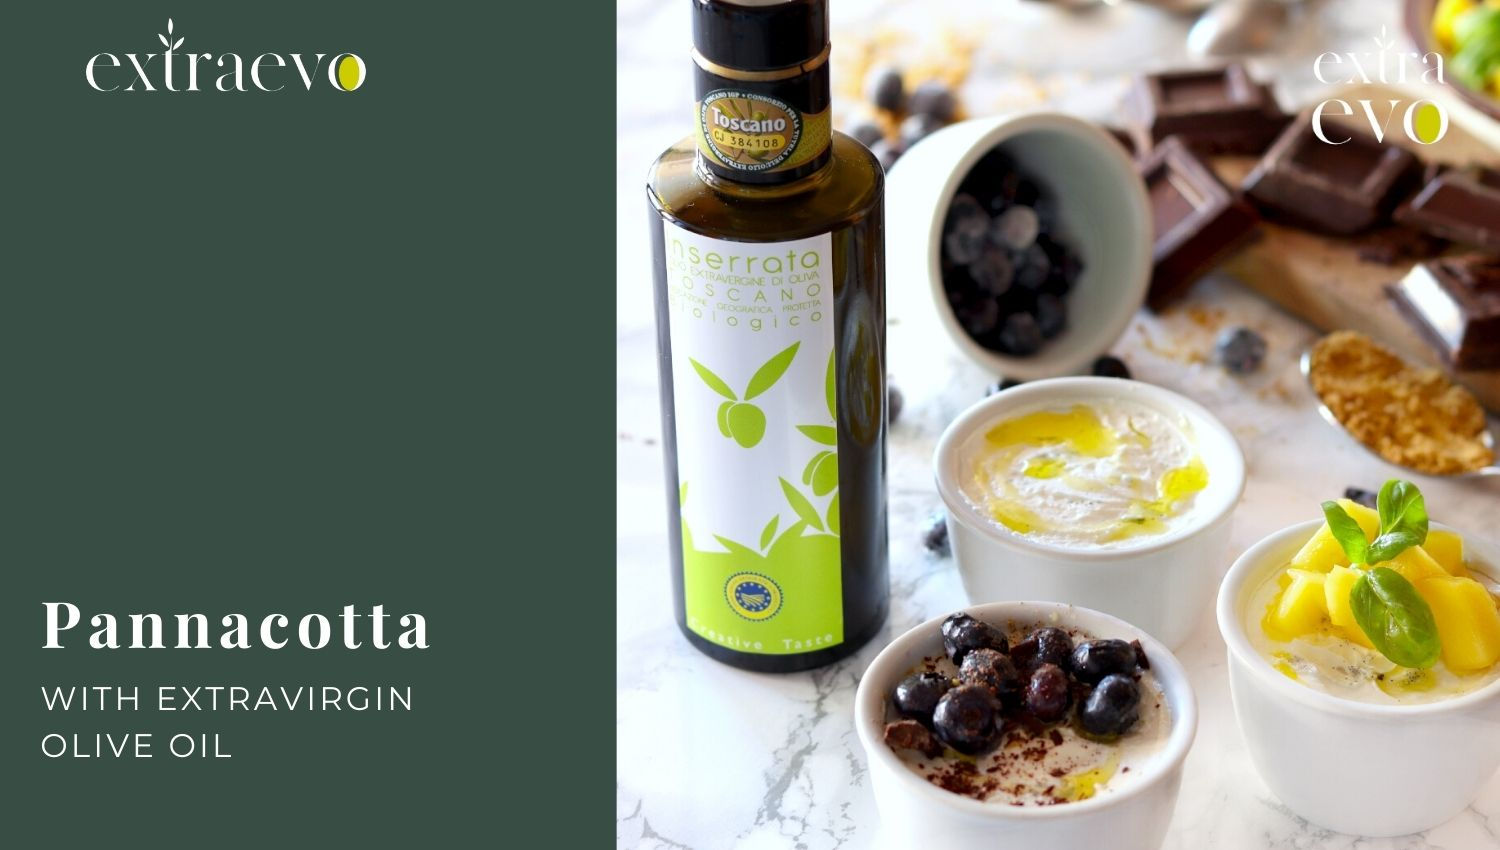 Panna cotta trio with extra virgin olive oil